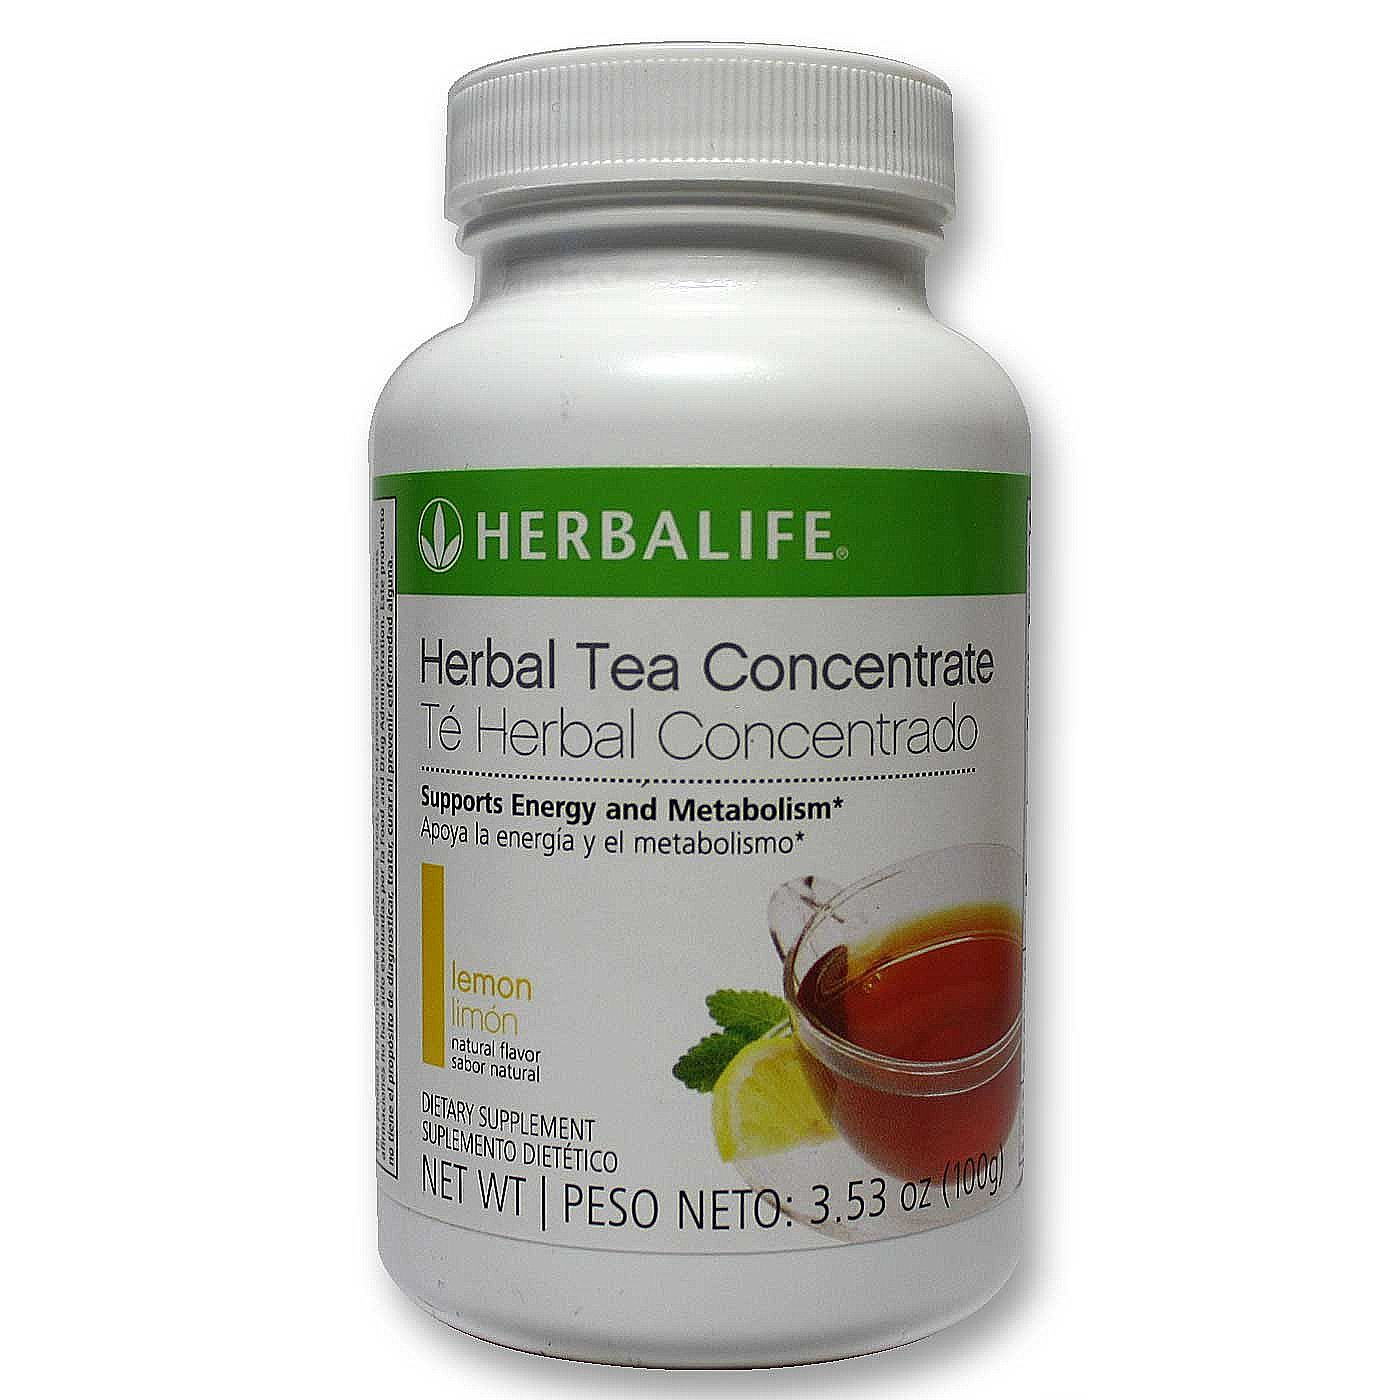 Herbalife Herbal Tea Concentrate - Lemon - 3.5 0z (100 g